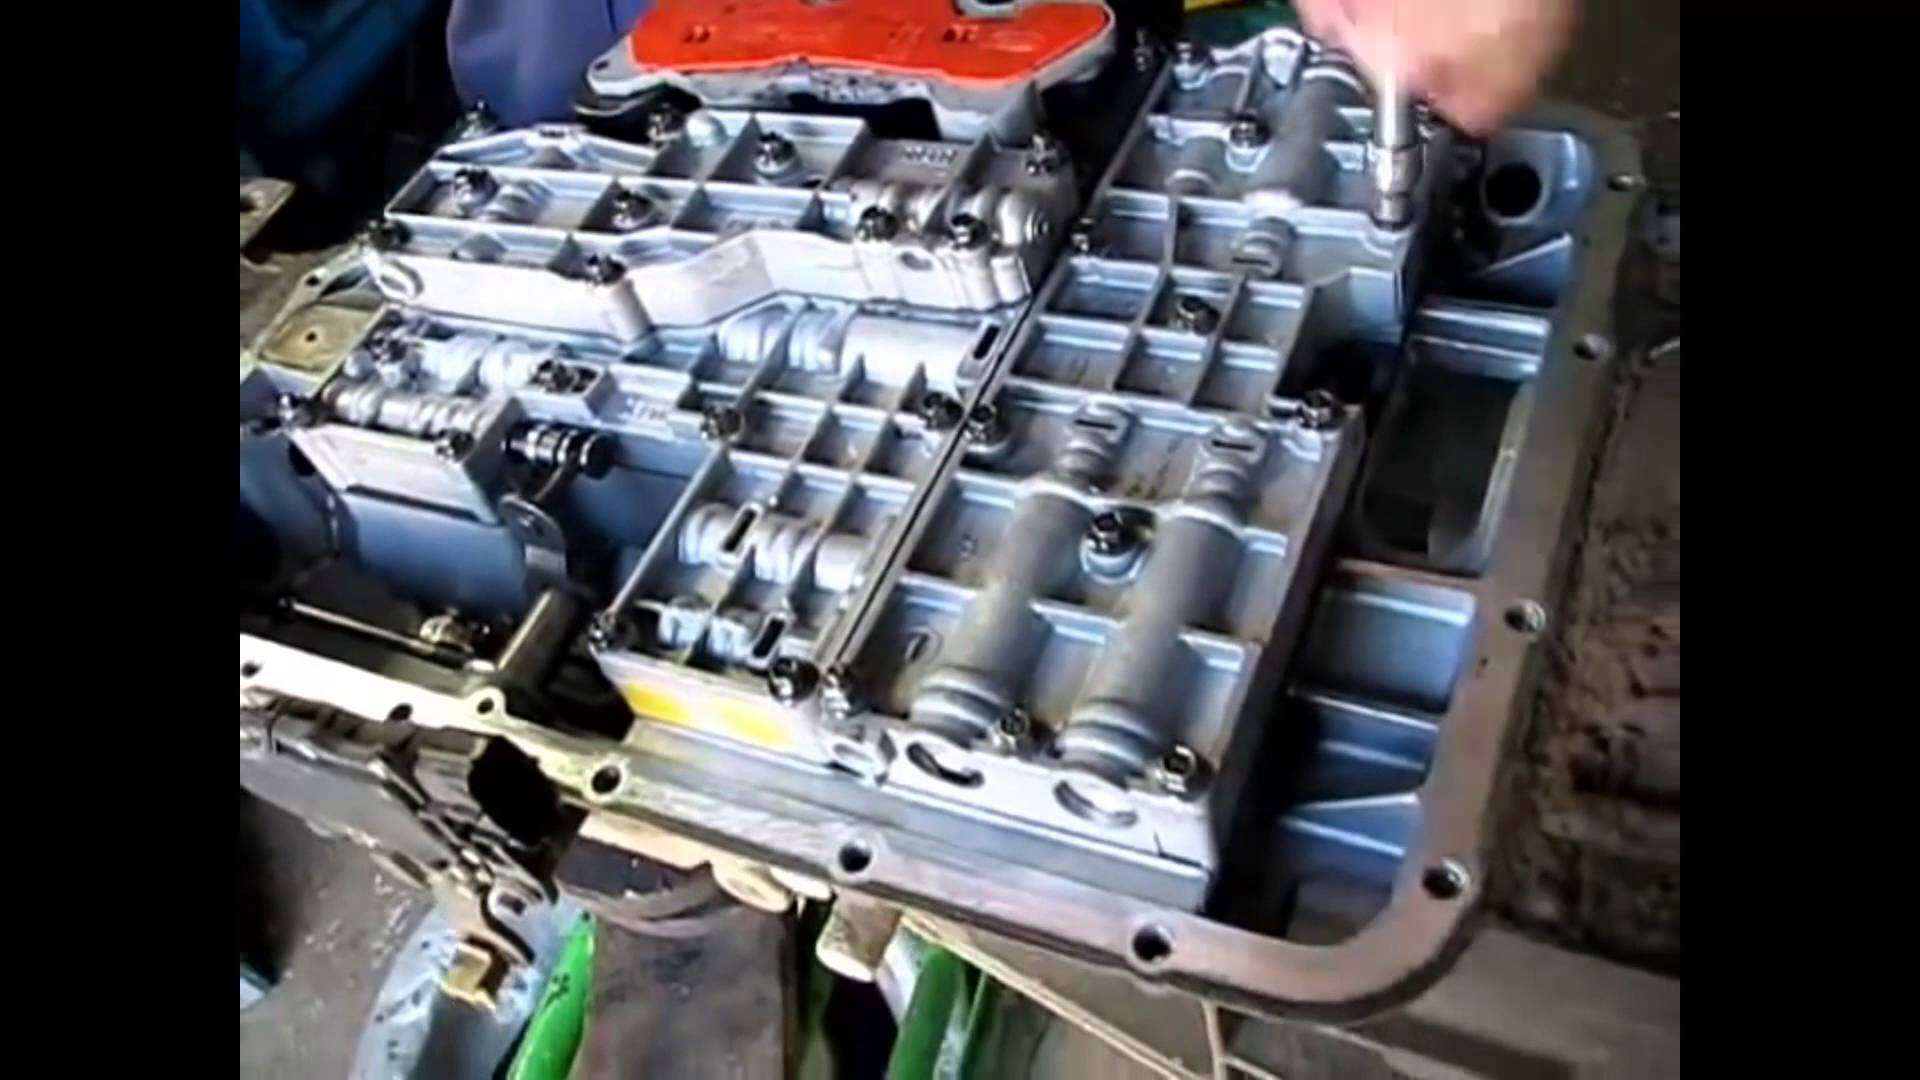 How To Fix The Ford 4r100 Transmission Problems E4od Mlps Wiring Diagram 5 Works Only In Reverse